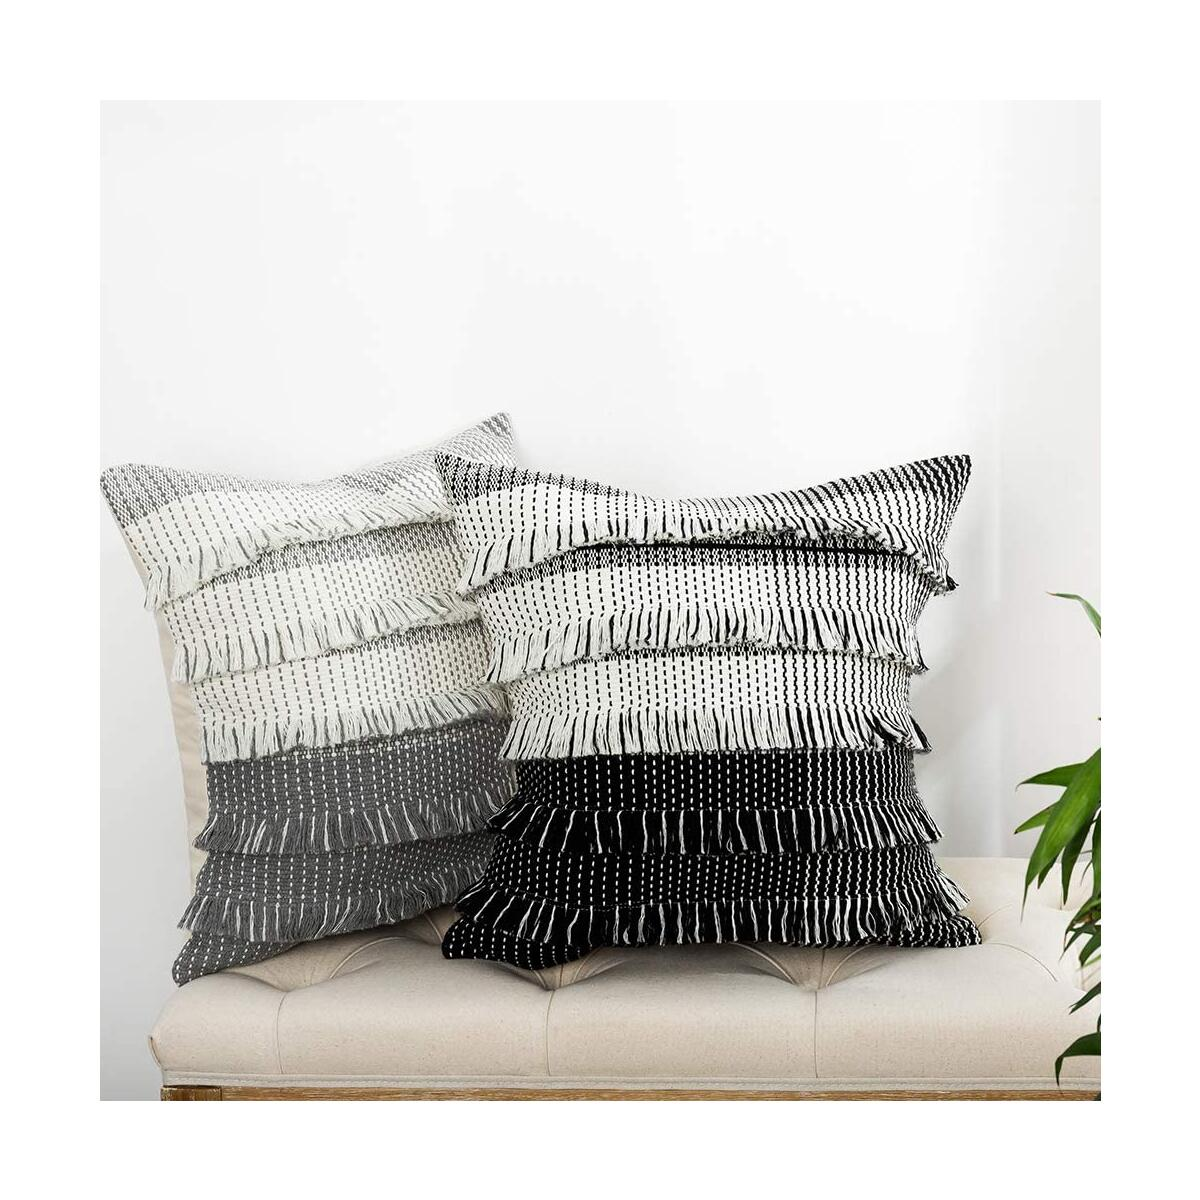 blue page Boho Decorative Throw Pillow Covers for Sofa Couch Bedroom, Gradient Grey Fringes Square Cushion Cover 18 x 18 Inch, Modern Accent Home Décor Soft Pillowcase (Handmade, Neutral)